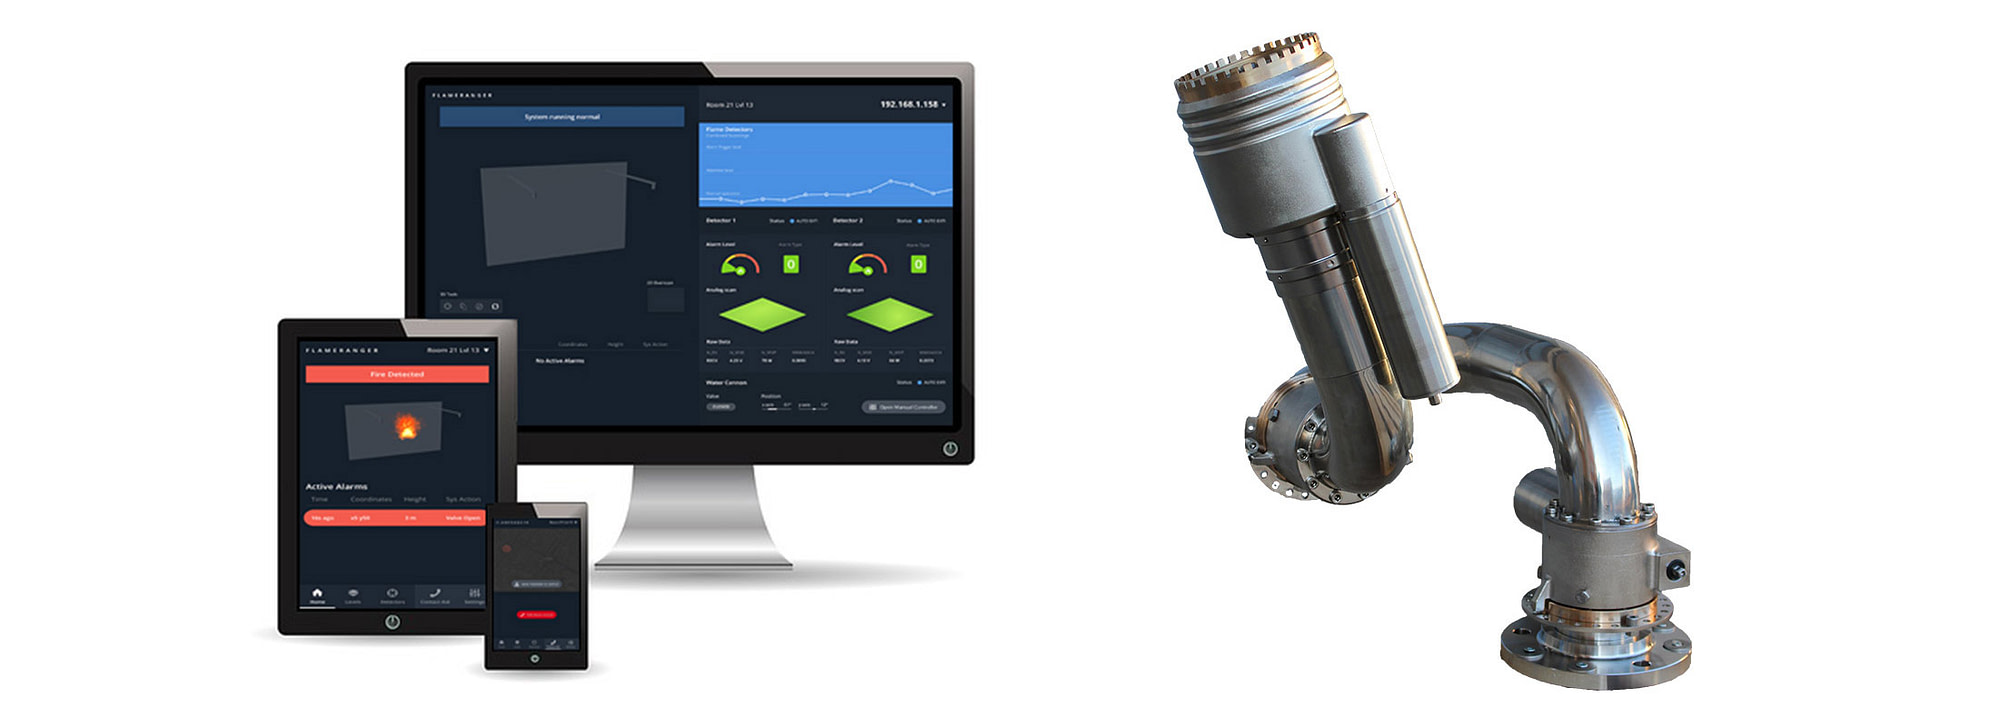 Unifire Internet Control and Graphical User Interfaces for Force robotic nozzle fire monitor water cannon control